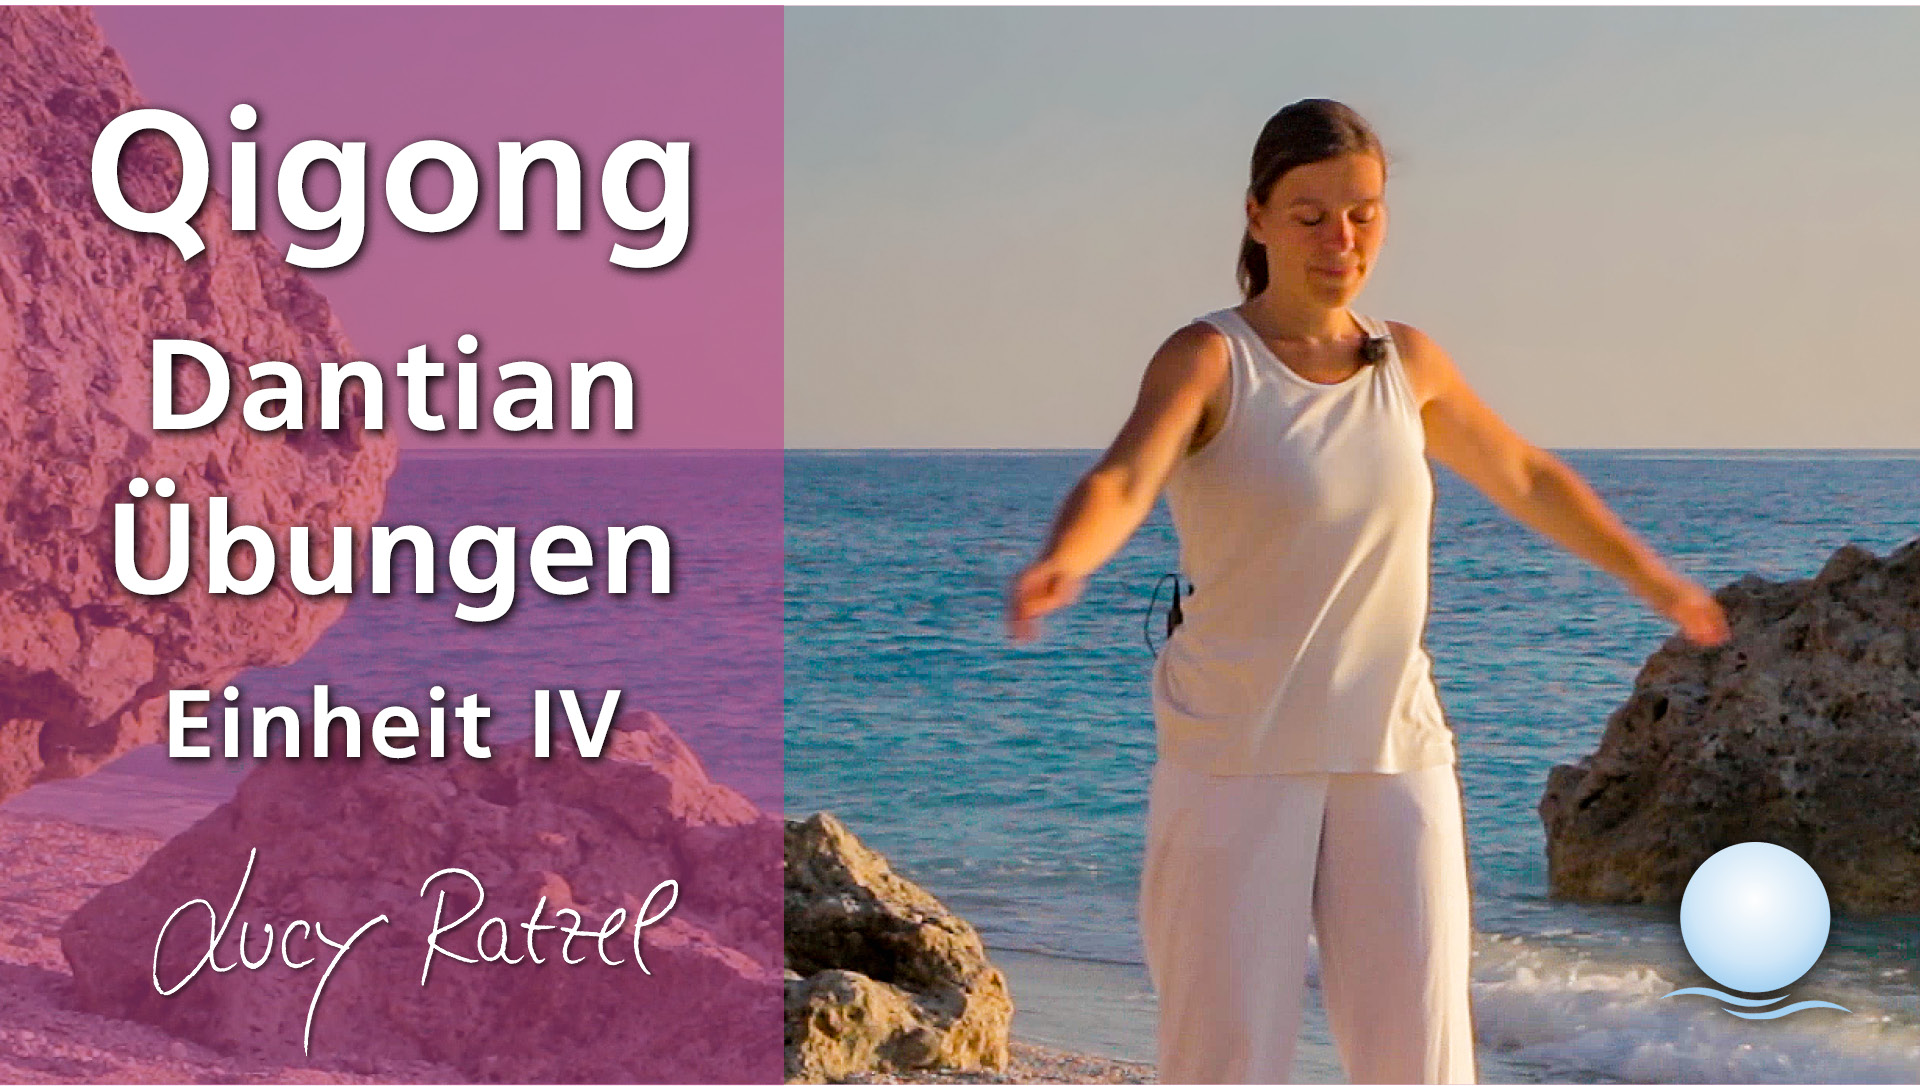 Qigong tapping exercice